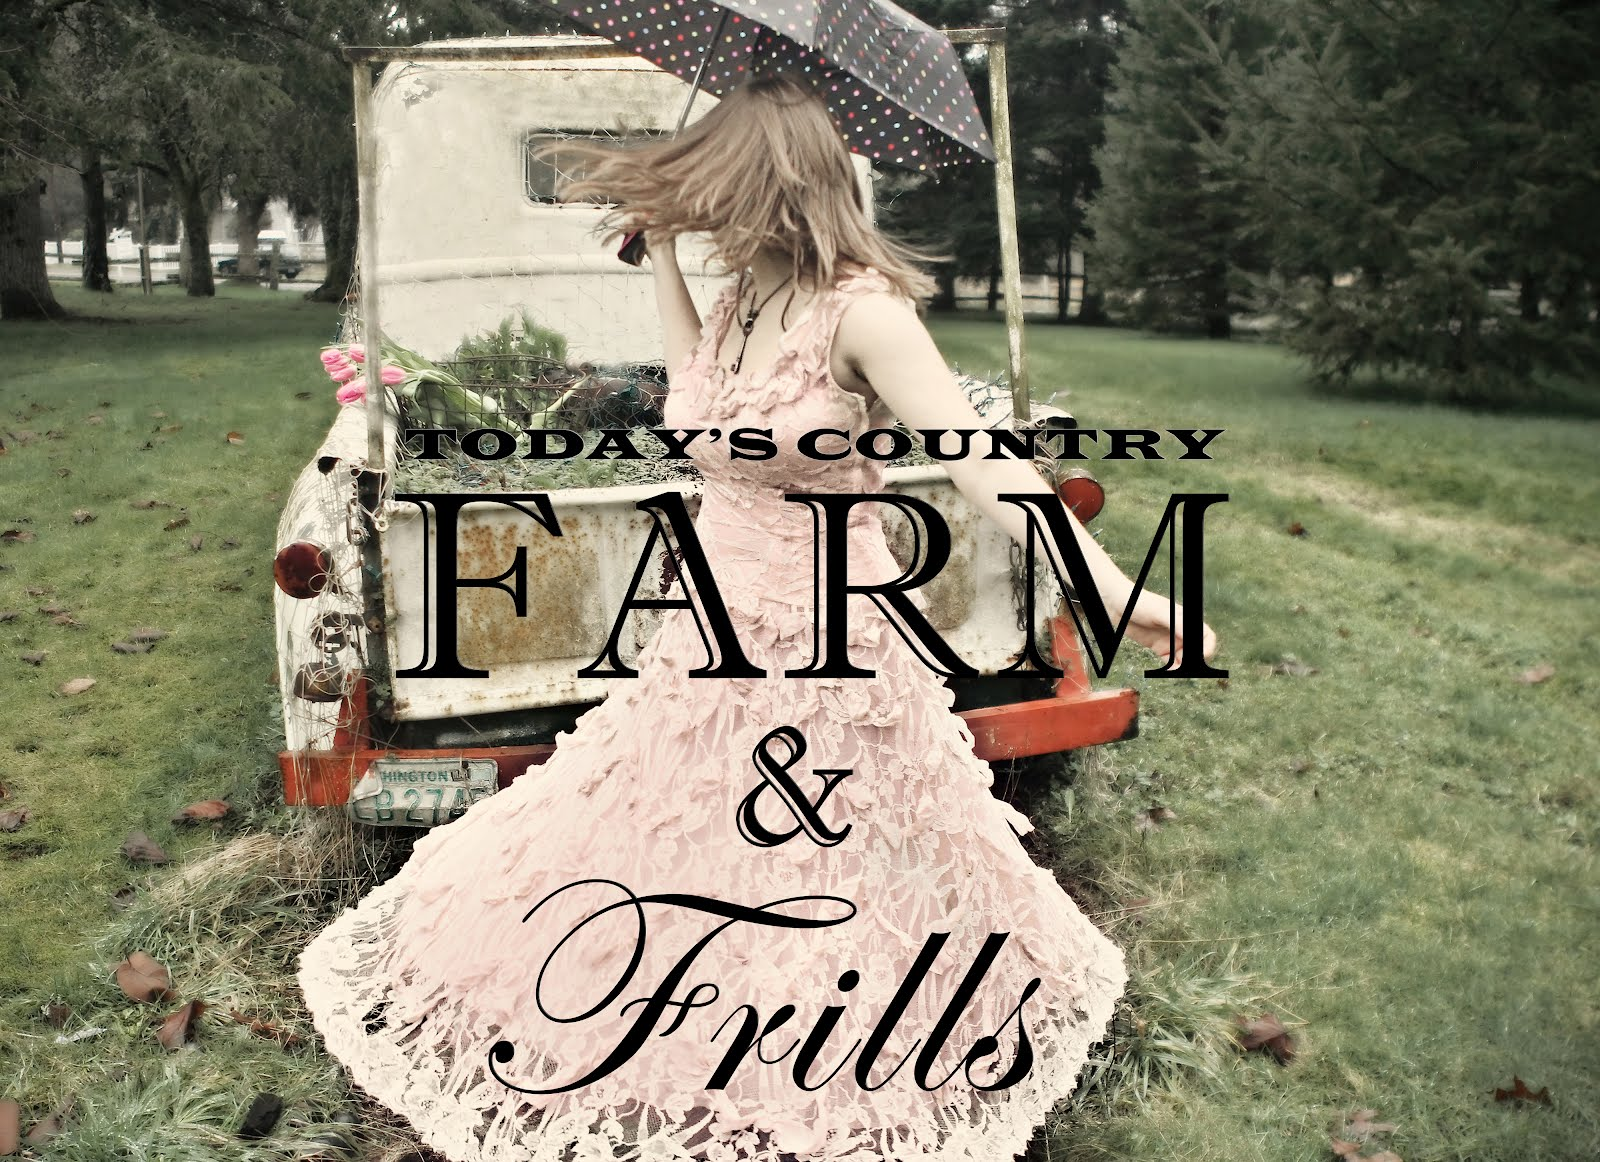 Today's Country Farm & Frills